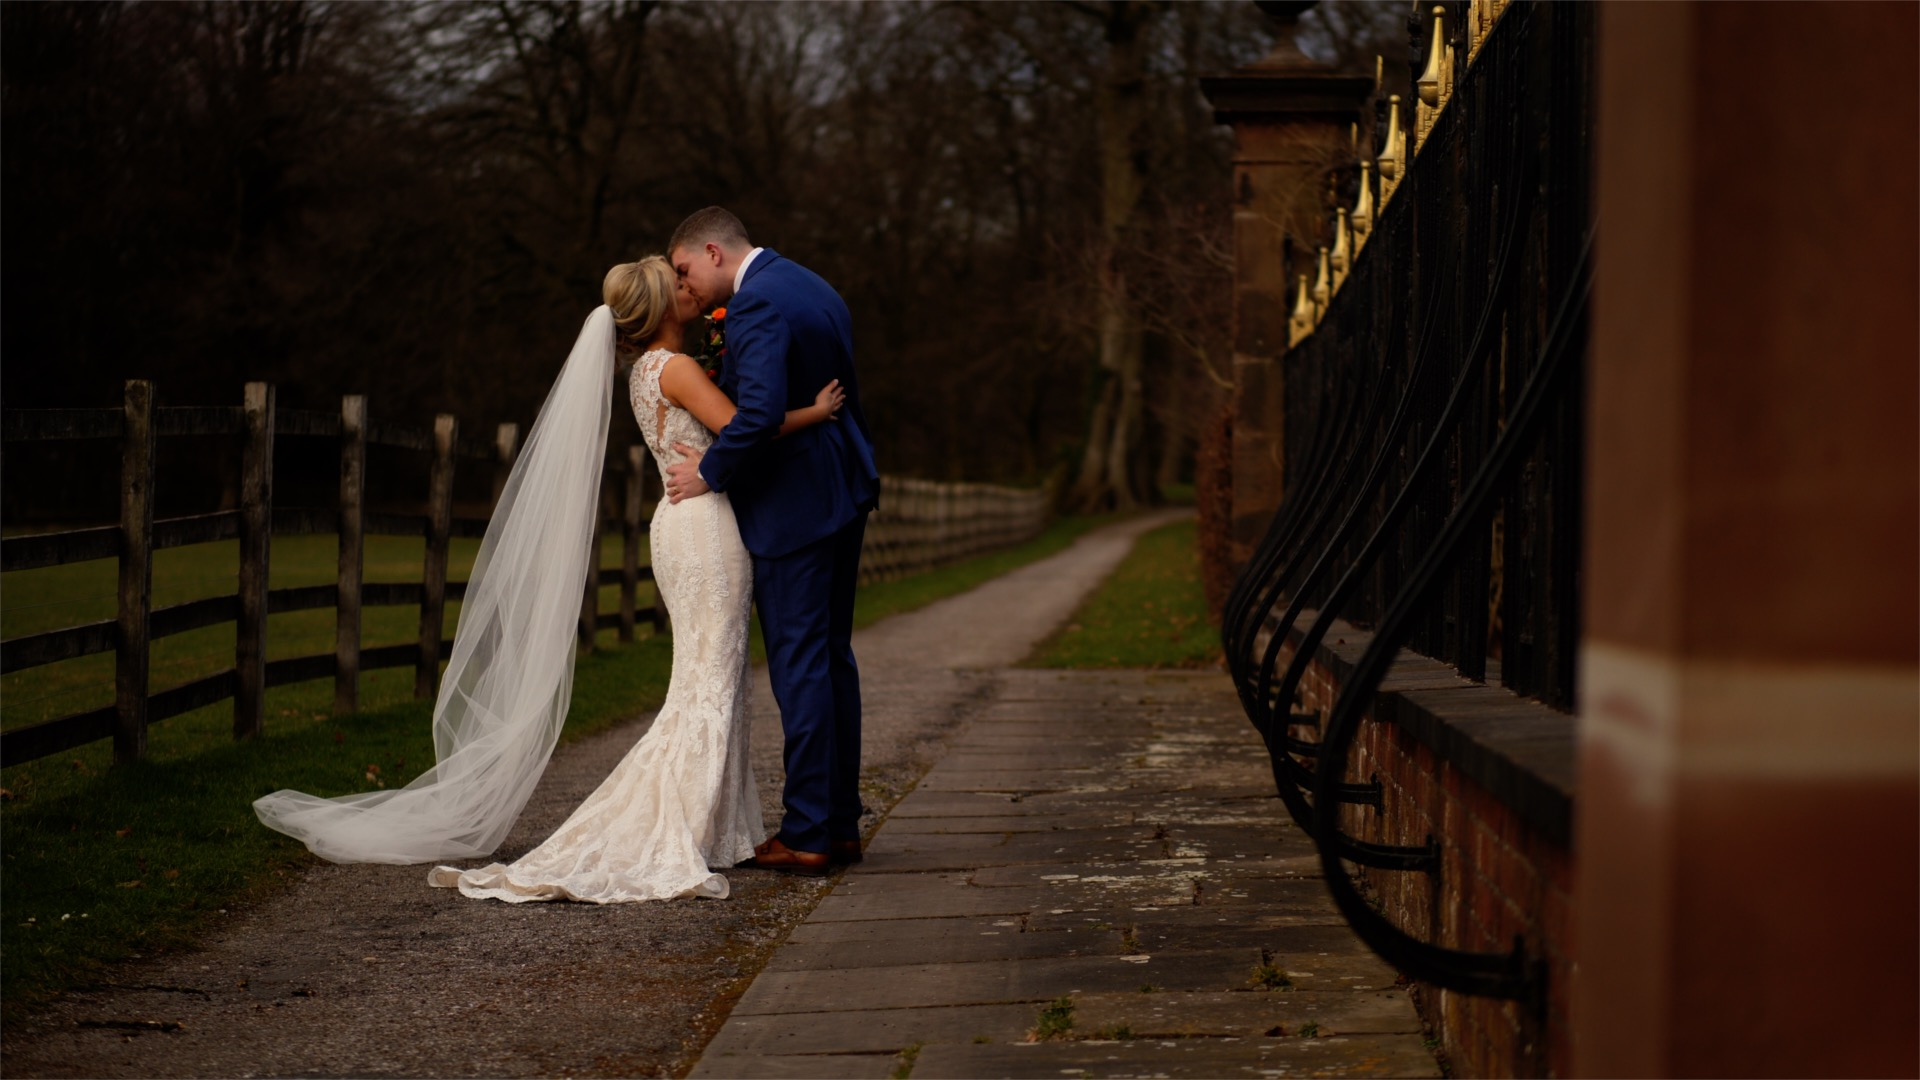 Jen and Dan, the bride and the groom, share a kiss after their wedding ceremony in the grounds of the stunning wedding venue, Knowsley Hall, Prescot, near Liverpool.